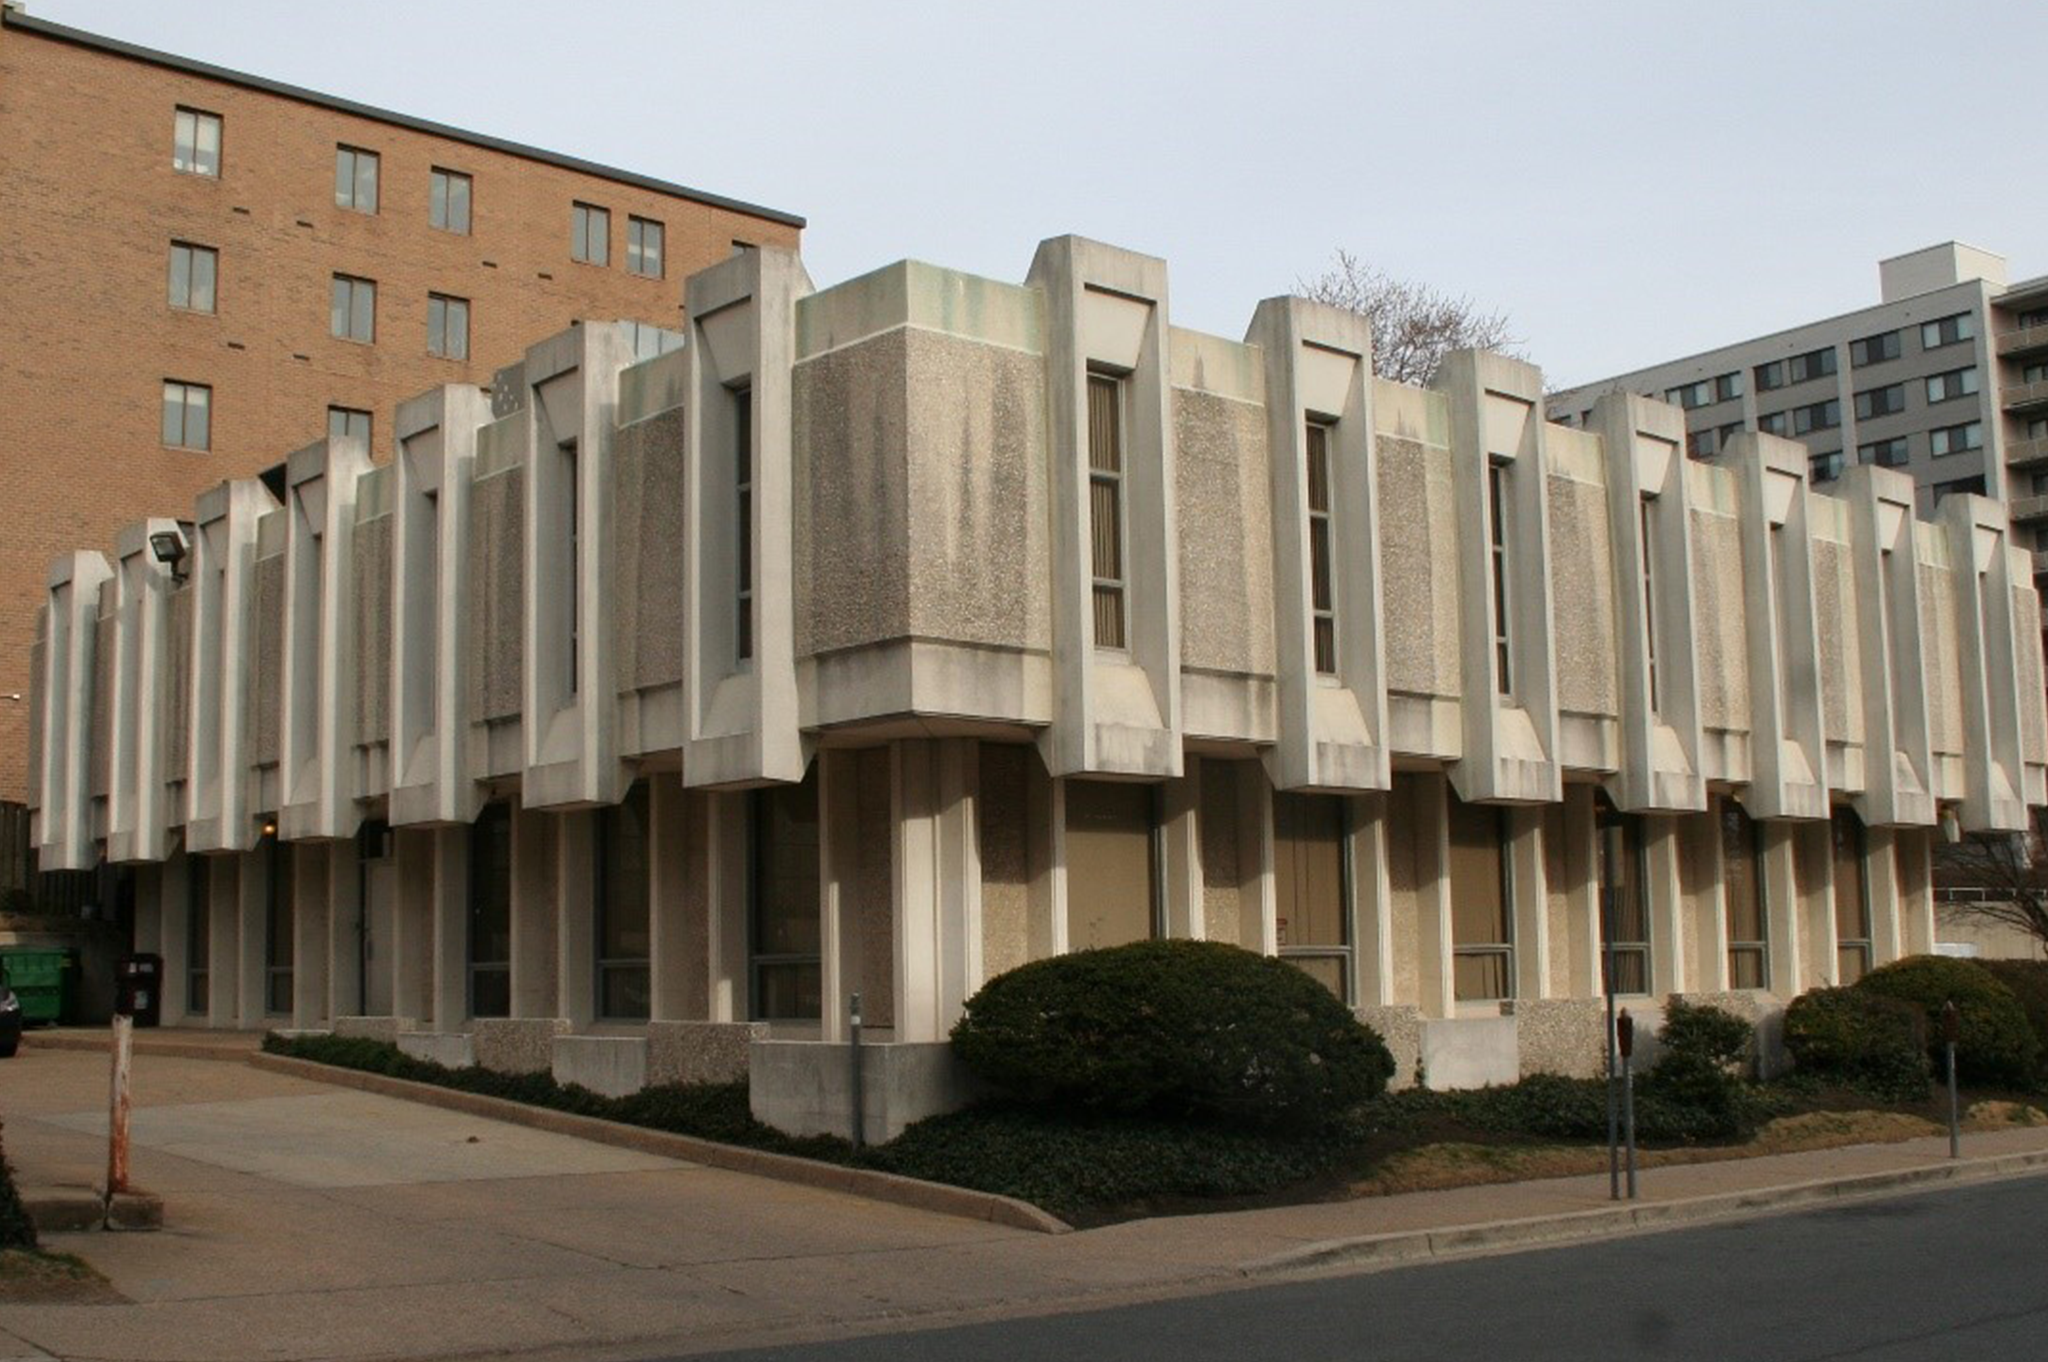 Heroic Architecture: A New Look at Brutalism